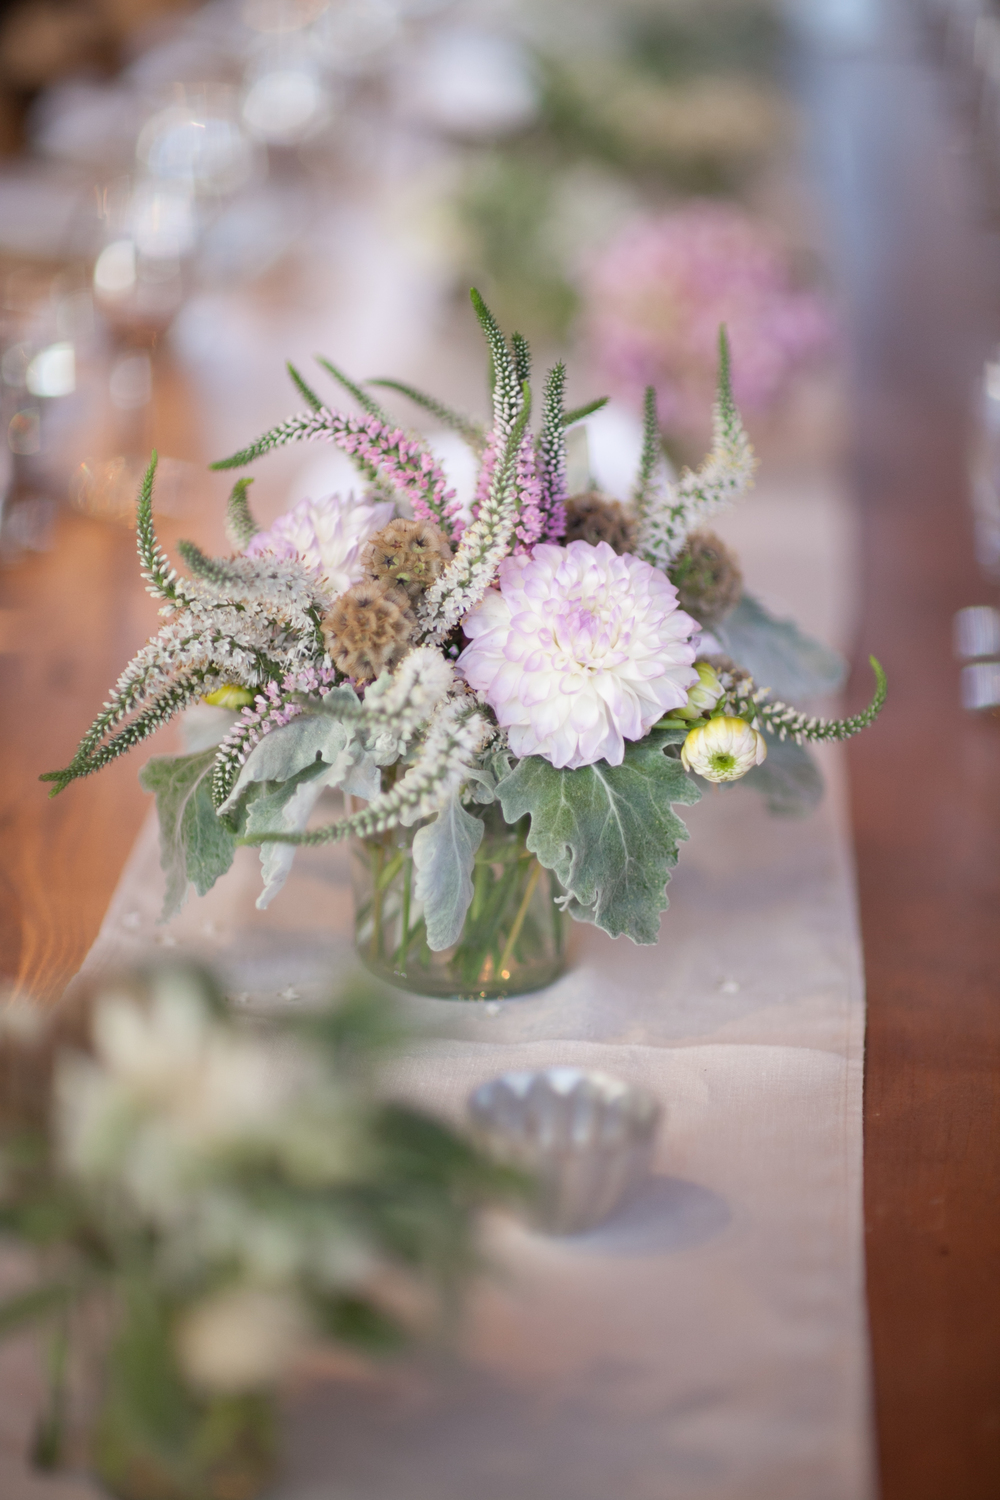 Vintage-Farm-Wedding-Centerpiece-Madeline-Trait.jpg